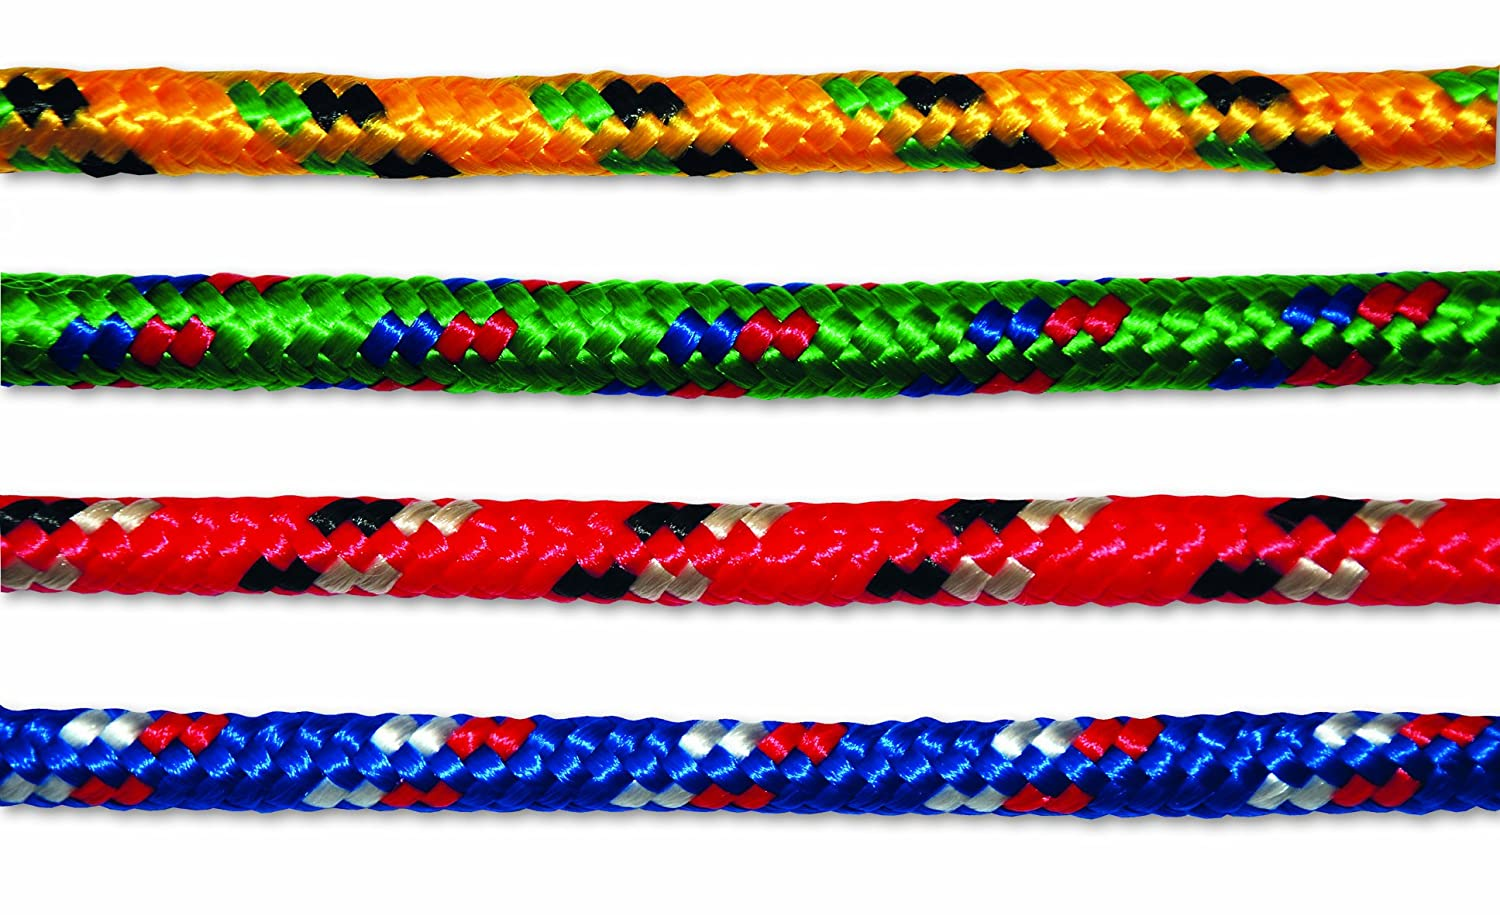 Multicord P/DPCA10 Braided rope - polypropylene/polyester - Diameter 9 mm - Length 7, 5 m - Assortment of colors